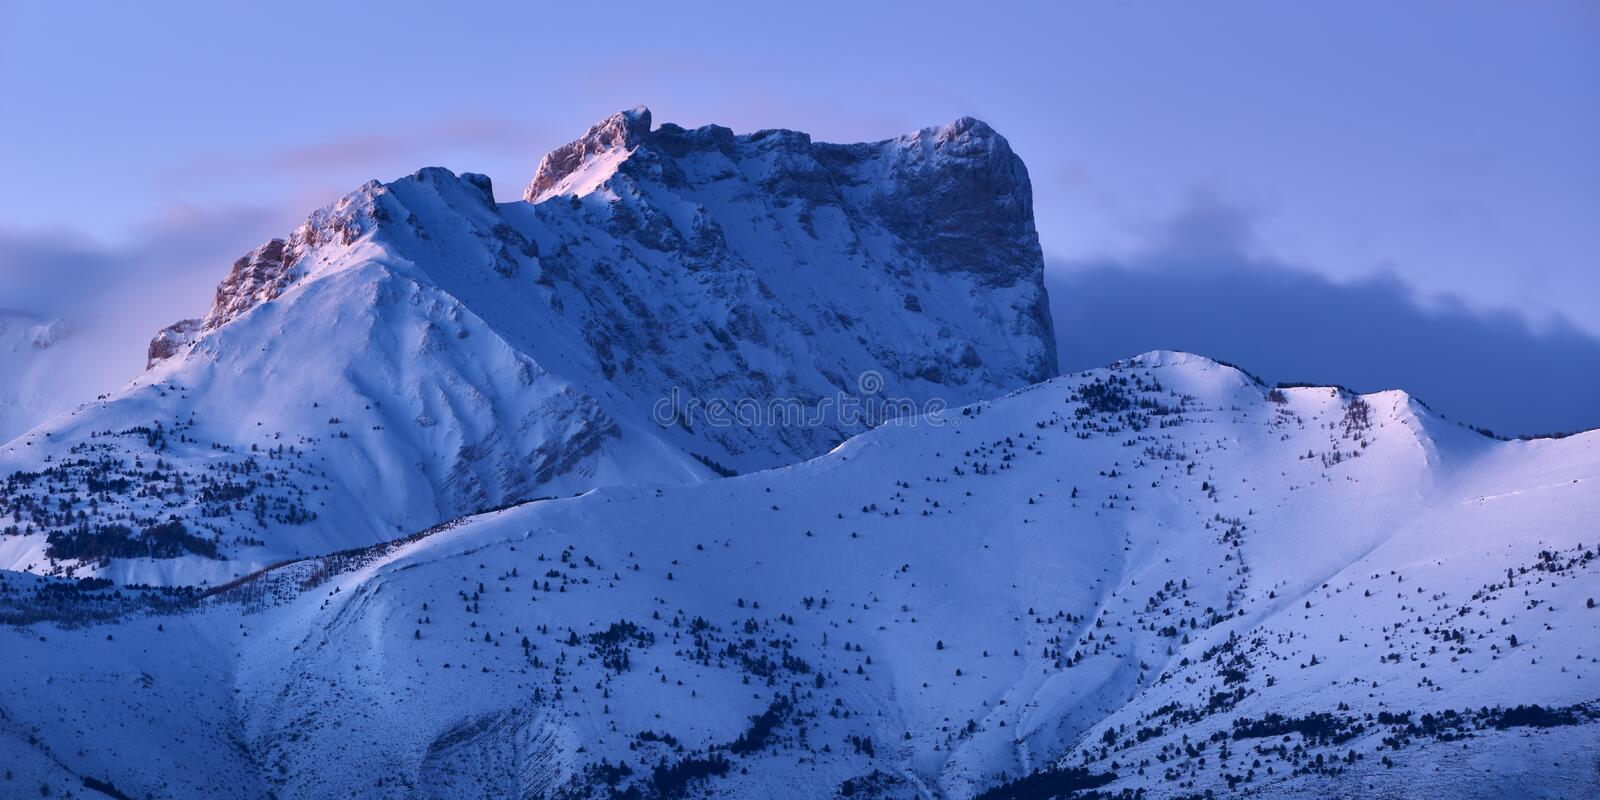 Bure Peak Pic de Bure in the Devoluy Mountain range at dusk in Winter. Hautes-Alpes, Alps, France. Bure Peak Pic de Bure in the Devoluy Mountain range at dusk in stock photography